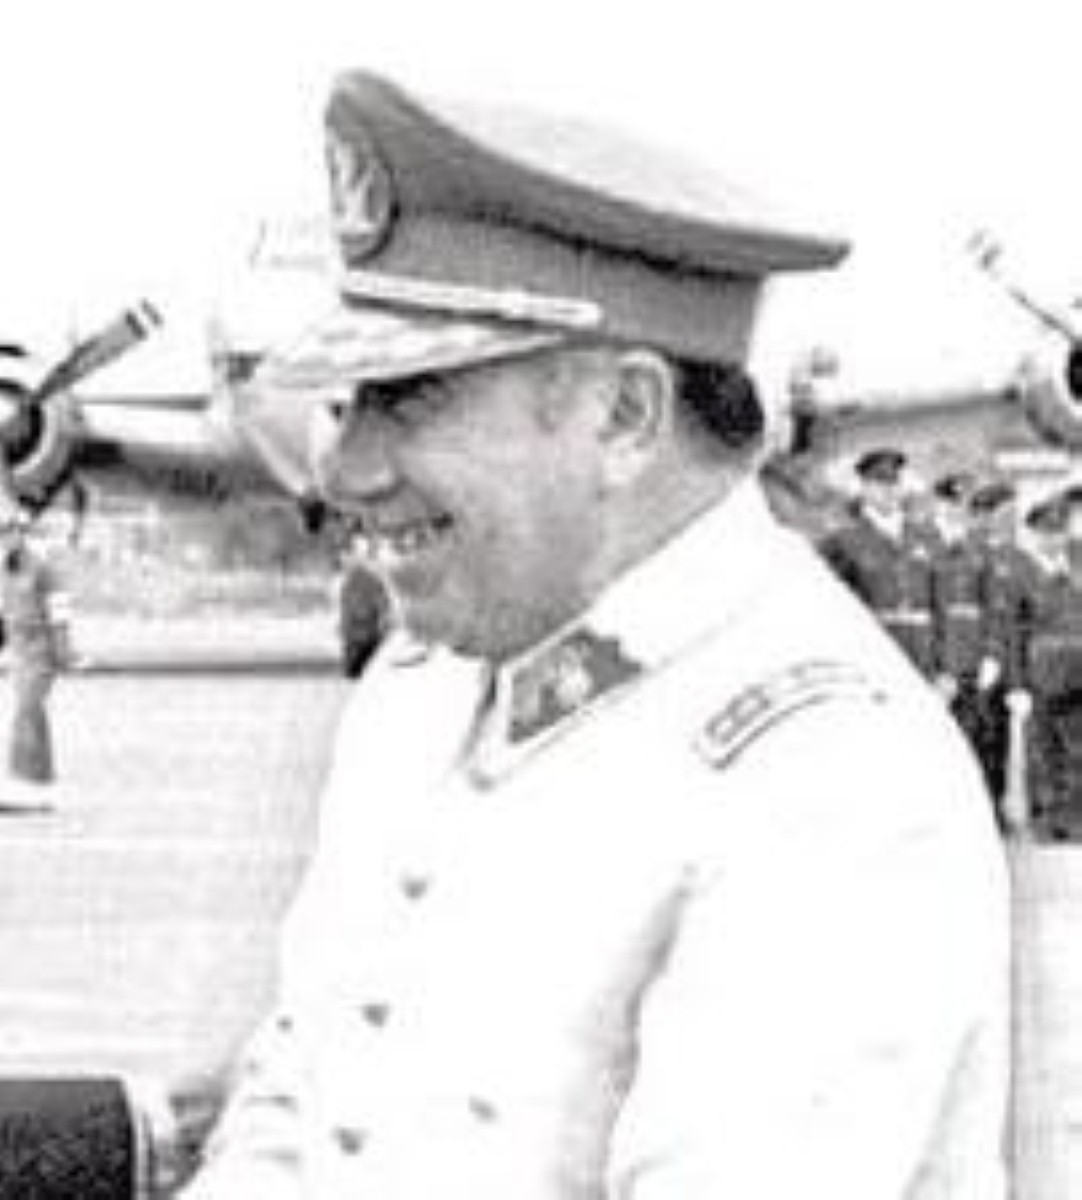 General Pinochet killed and tortured tens of thousands of people while in power in Chile